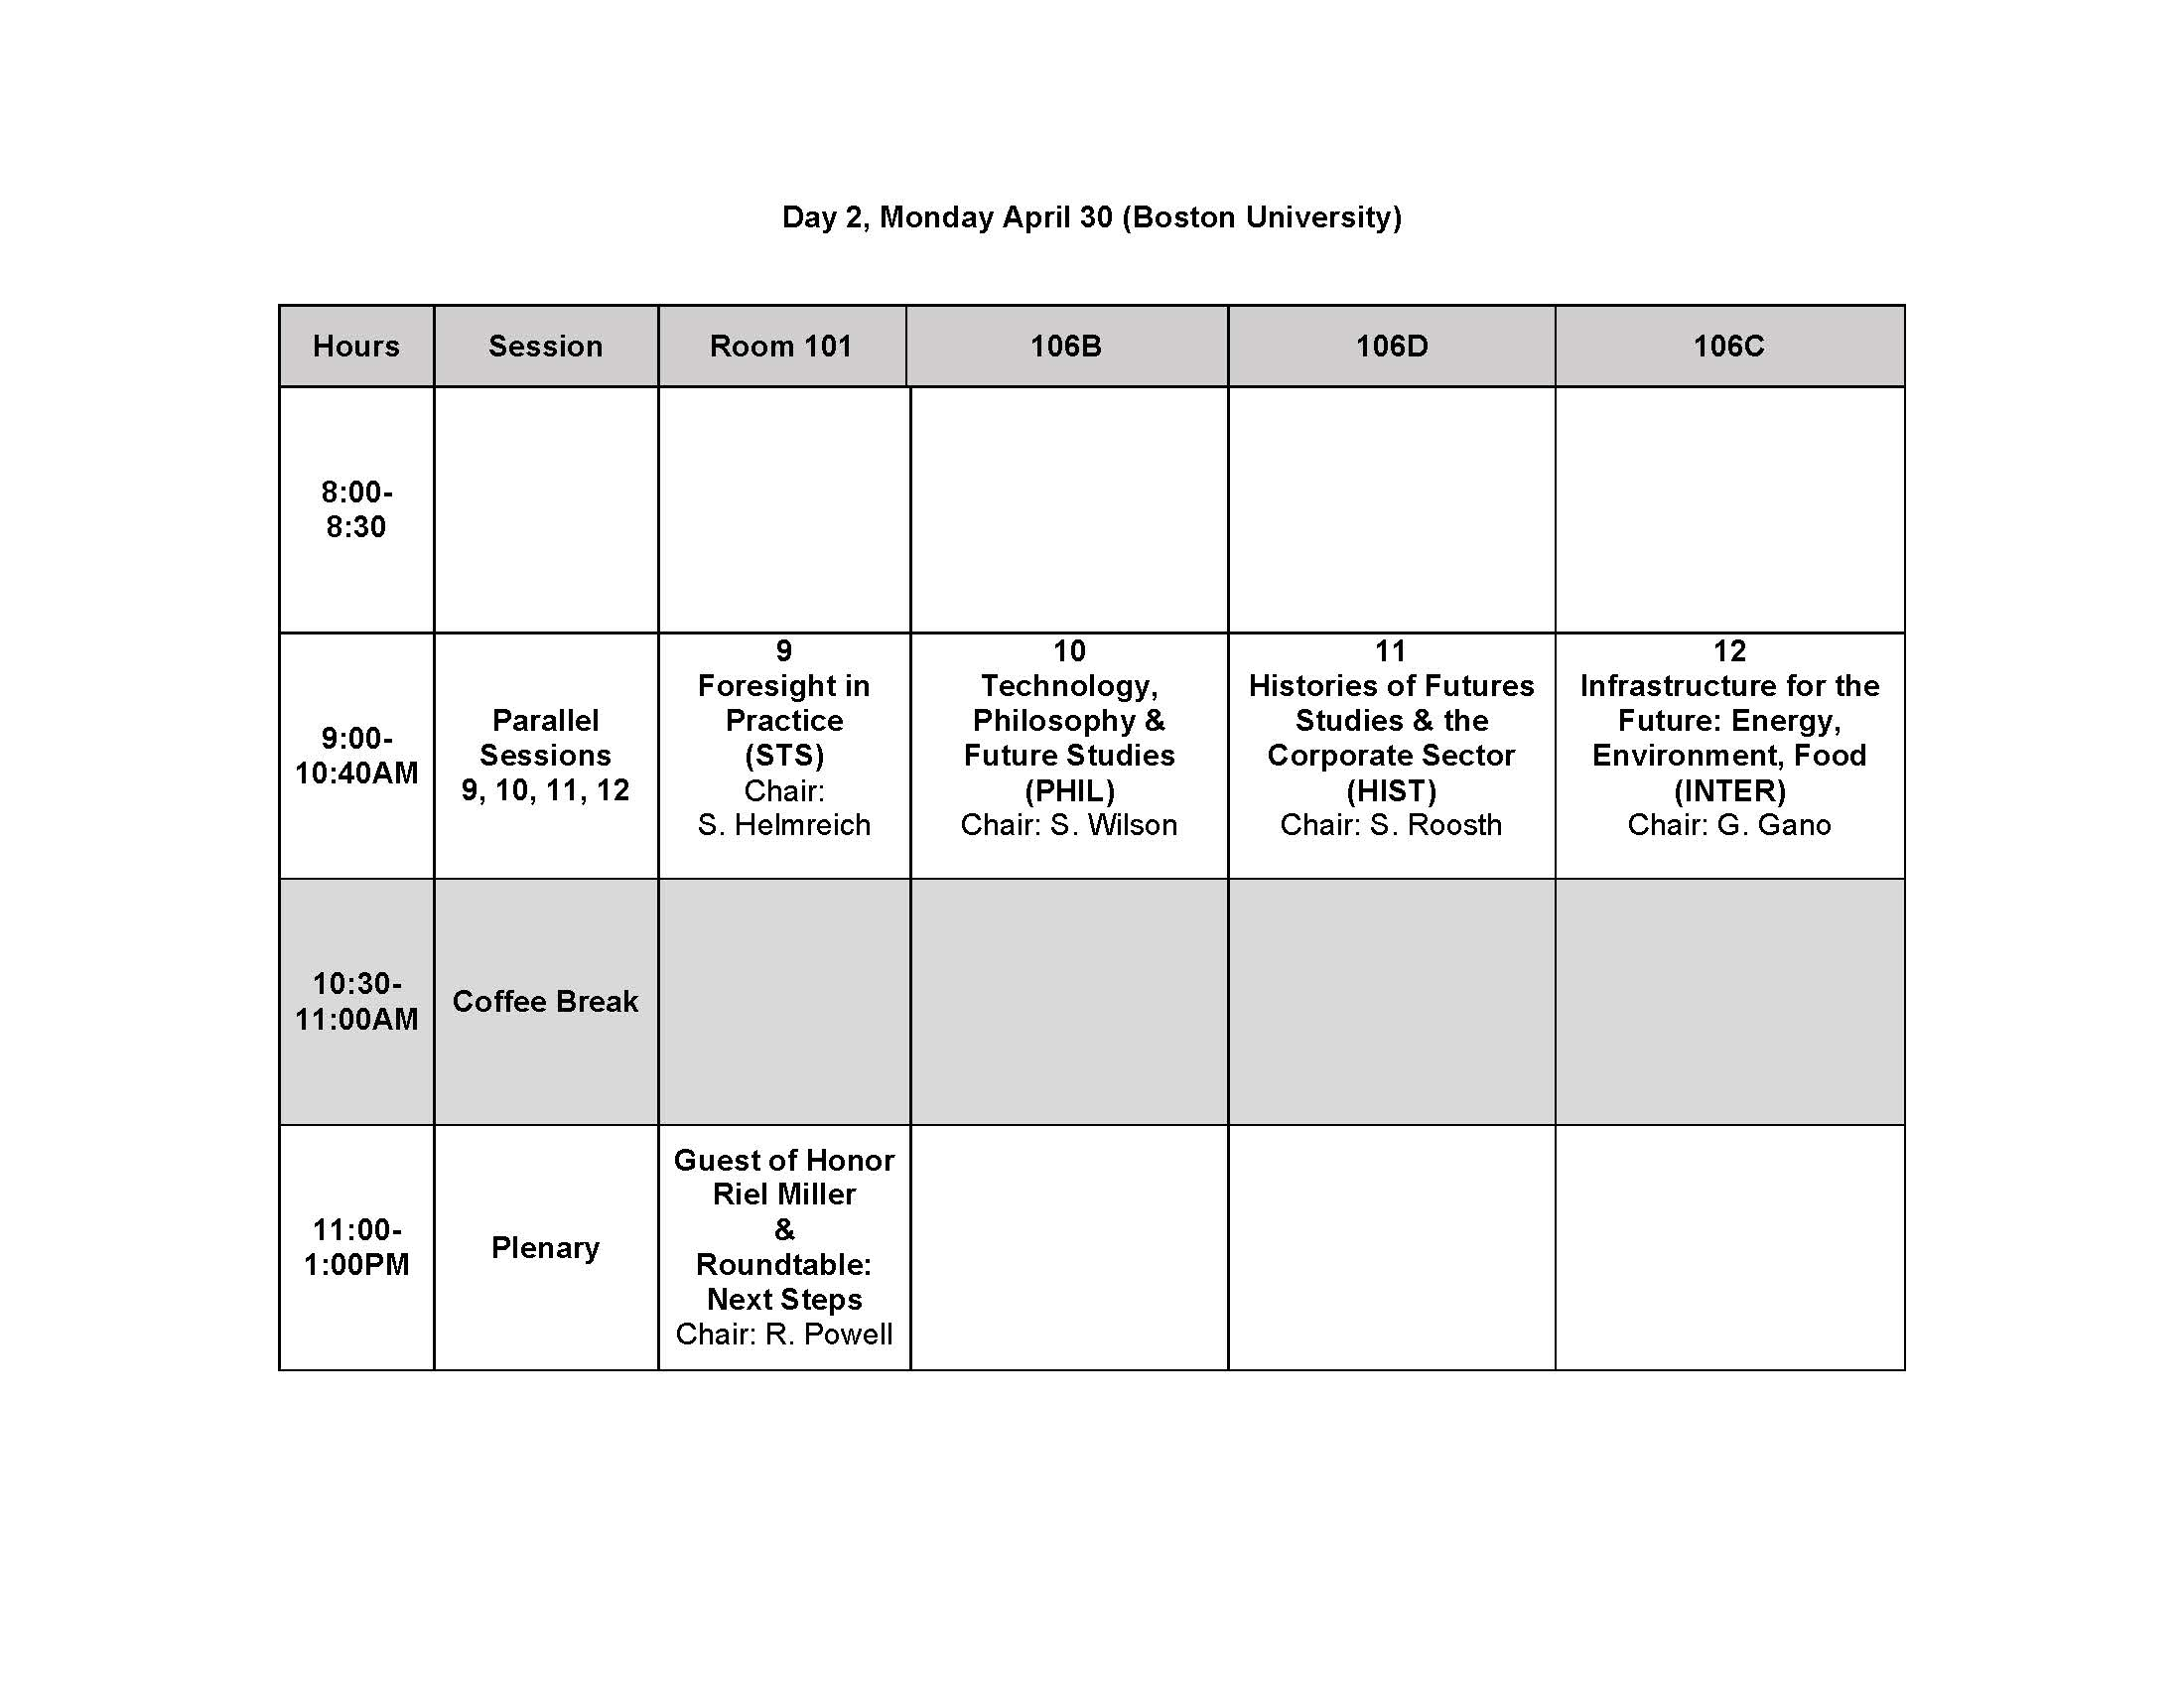 GwF Symposium Schedule At a Glance_Page 4.jpg